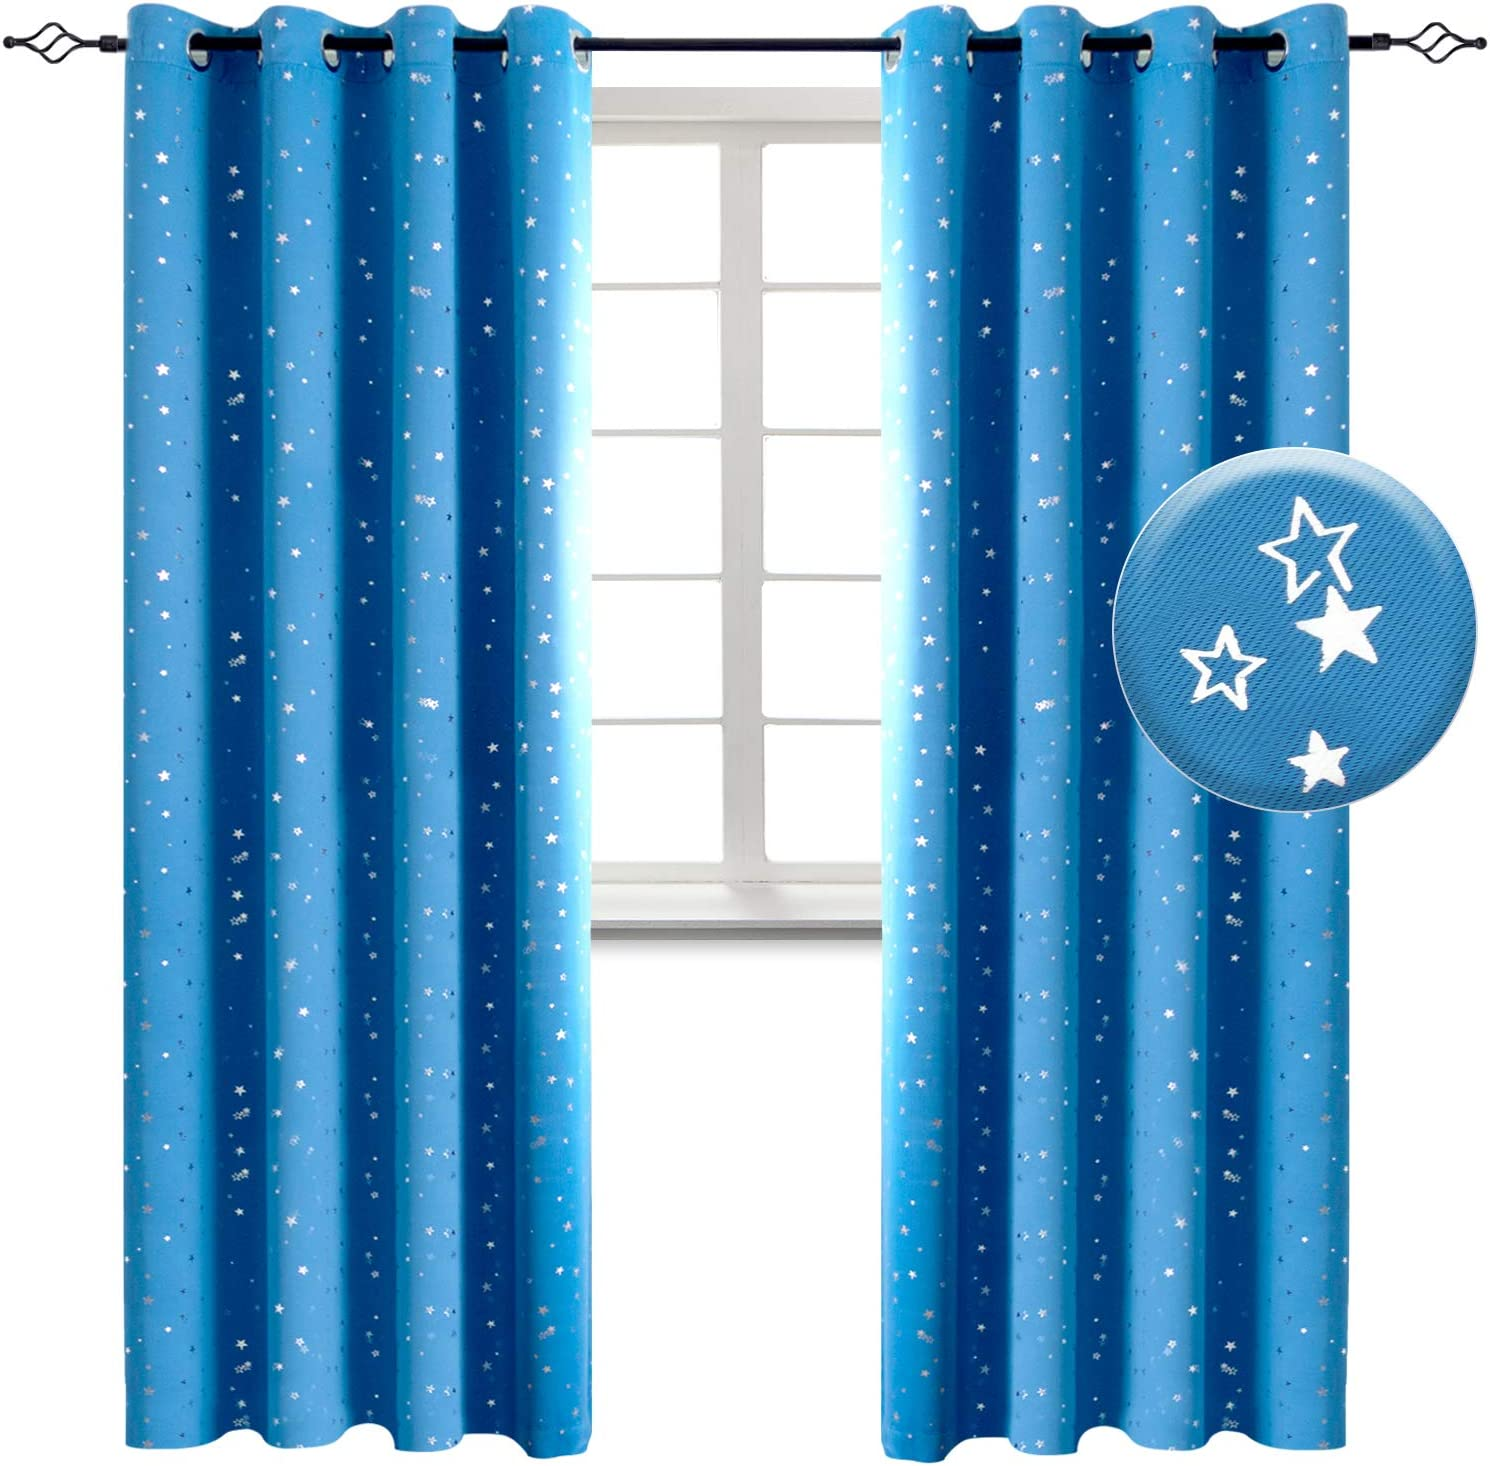 Eyelet Thermal Insulated Silver Star Print Room Darkening Curtains for Living Room BGment Kids Blackout Curtains for Bedroom 2 Panels W46 X L54 Inch, Mustard